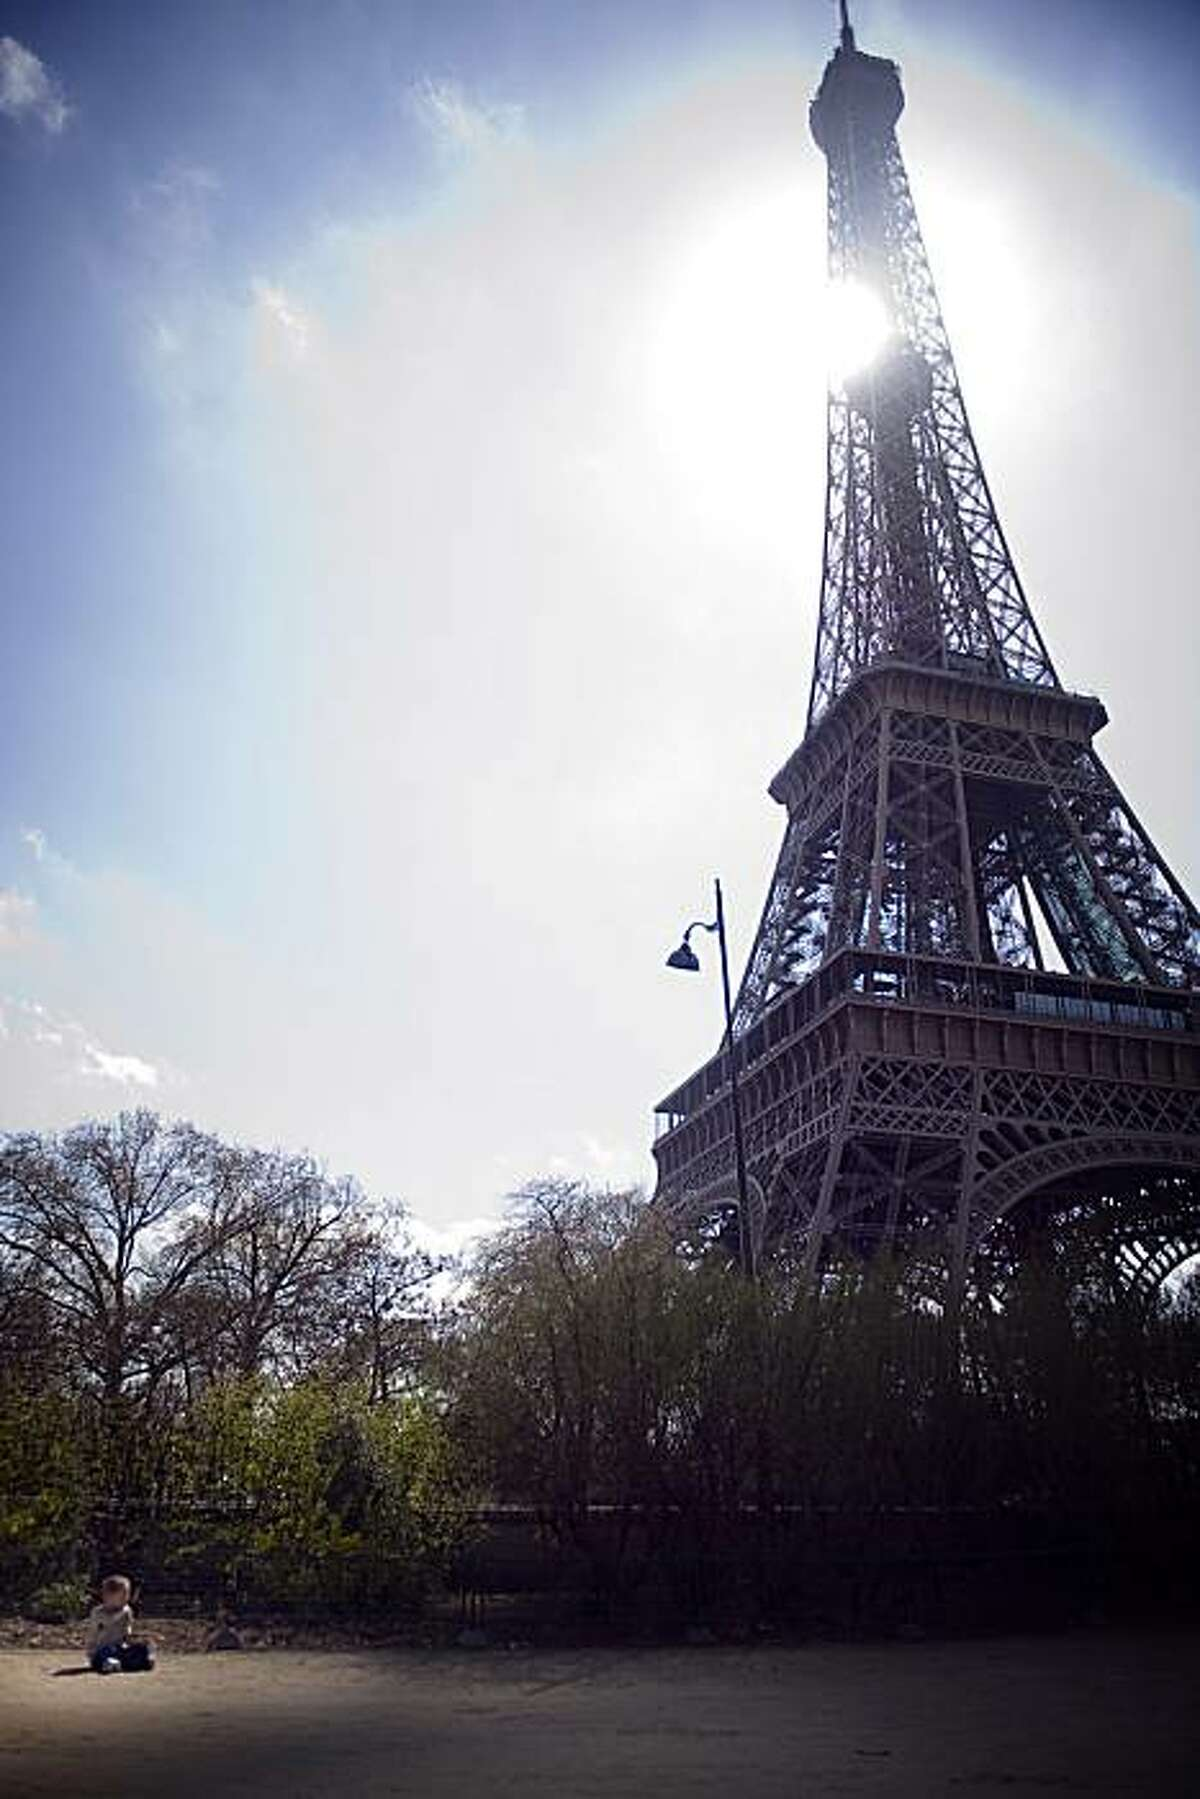 The Eiffel Tower is pictured in Paris on April 9, 2009, the second day that the 120-year-old tower is closed to visitors after staff went on strike to demand better work conditions at one of the world's most visited tourist sites.Employees were to hold talks with the Paris landmark's management today to discuss their demands for improvements to visitor services and better job security. AFP PHOTO / Martin Bureau (Photo credit should read MARTIN BUREAU/AFP/Getty Images)